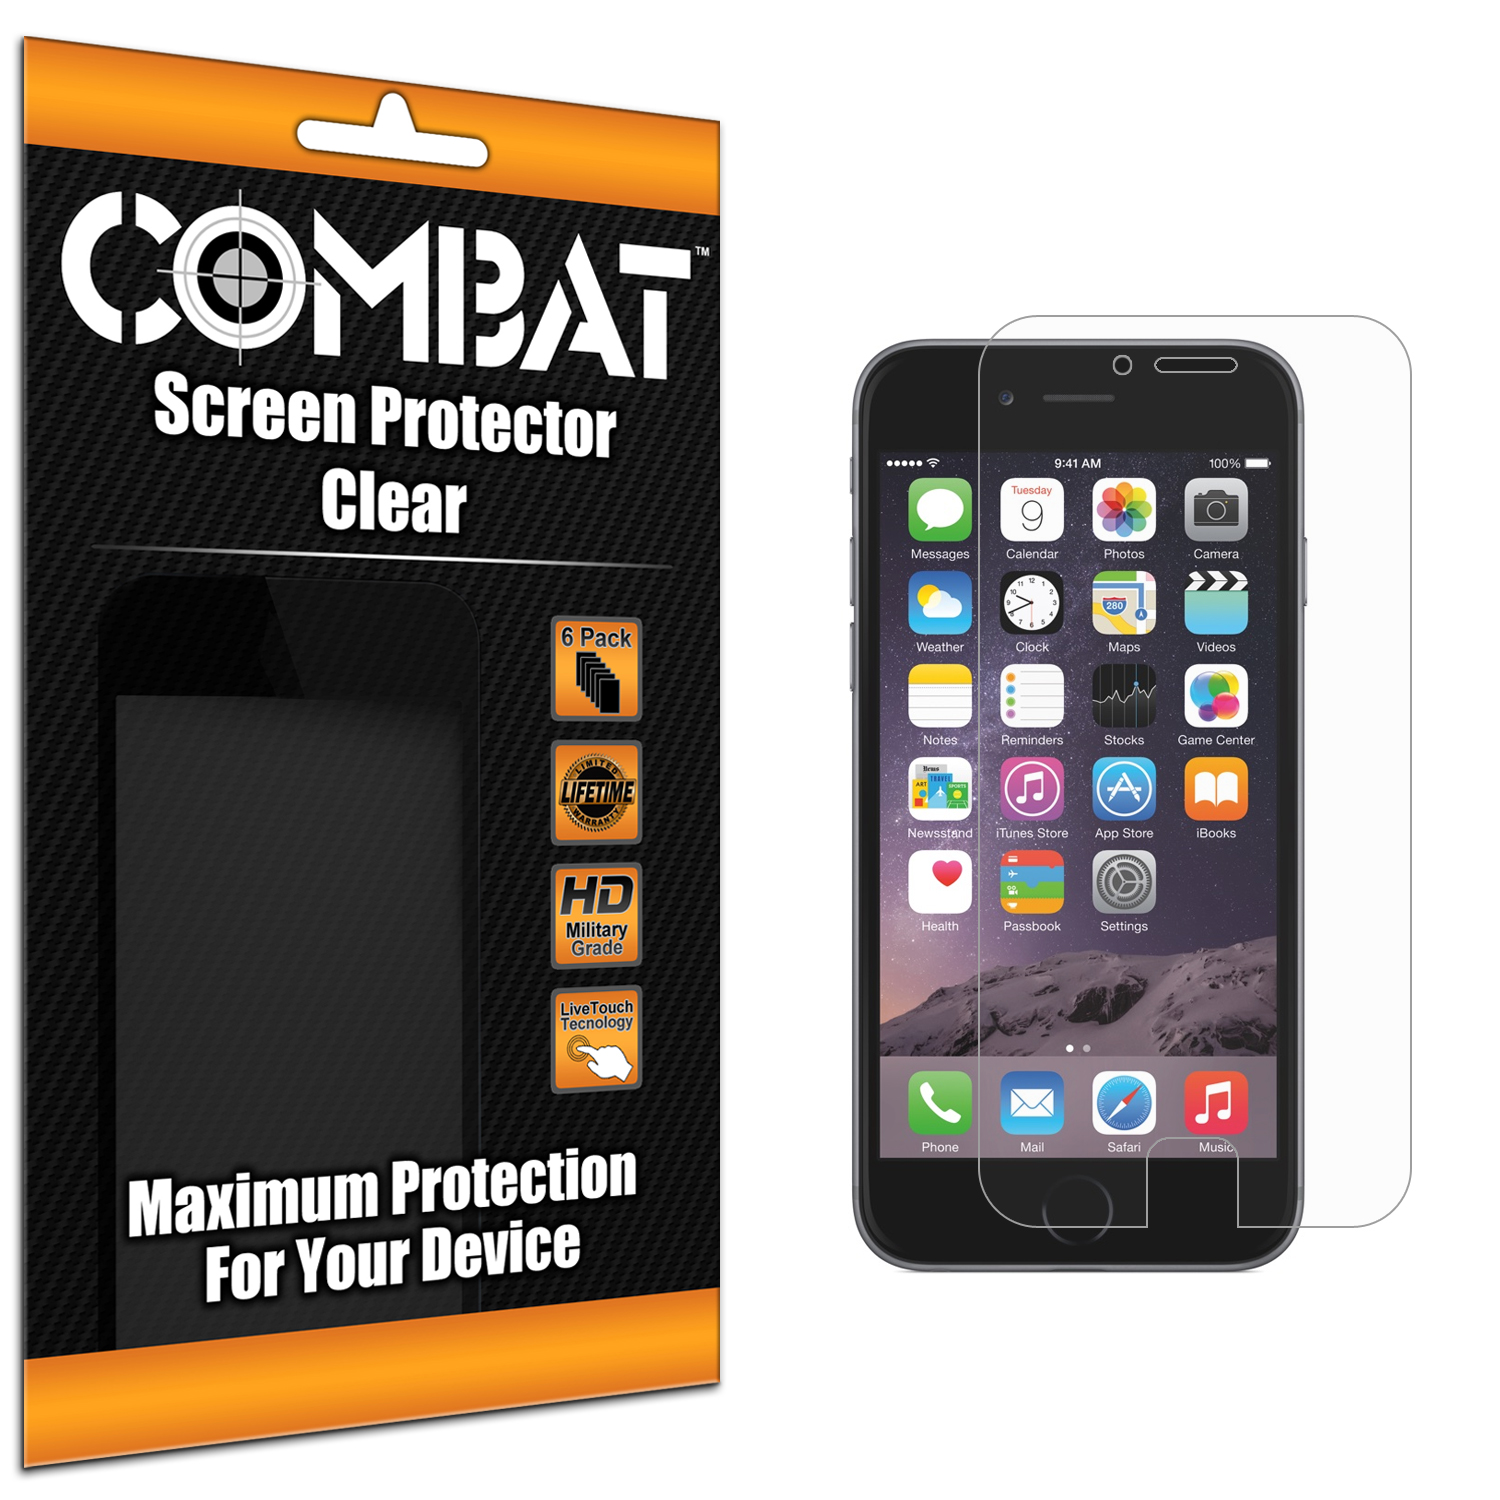 Apple iPhone 6 Plus 6S Plus (5.5) Combat 6 Pack HD Clear Screen Protector